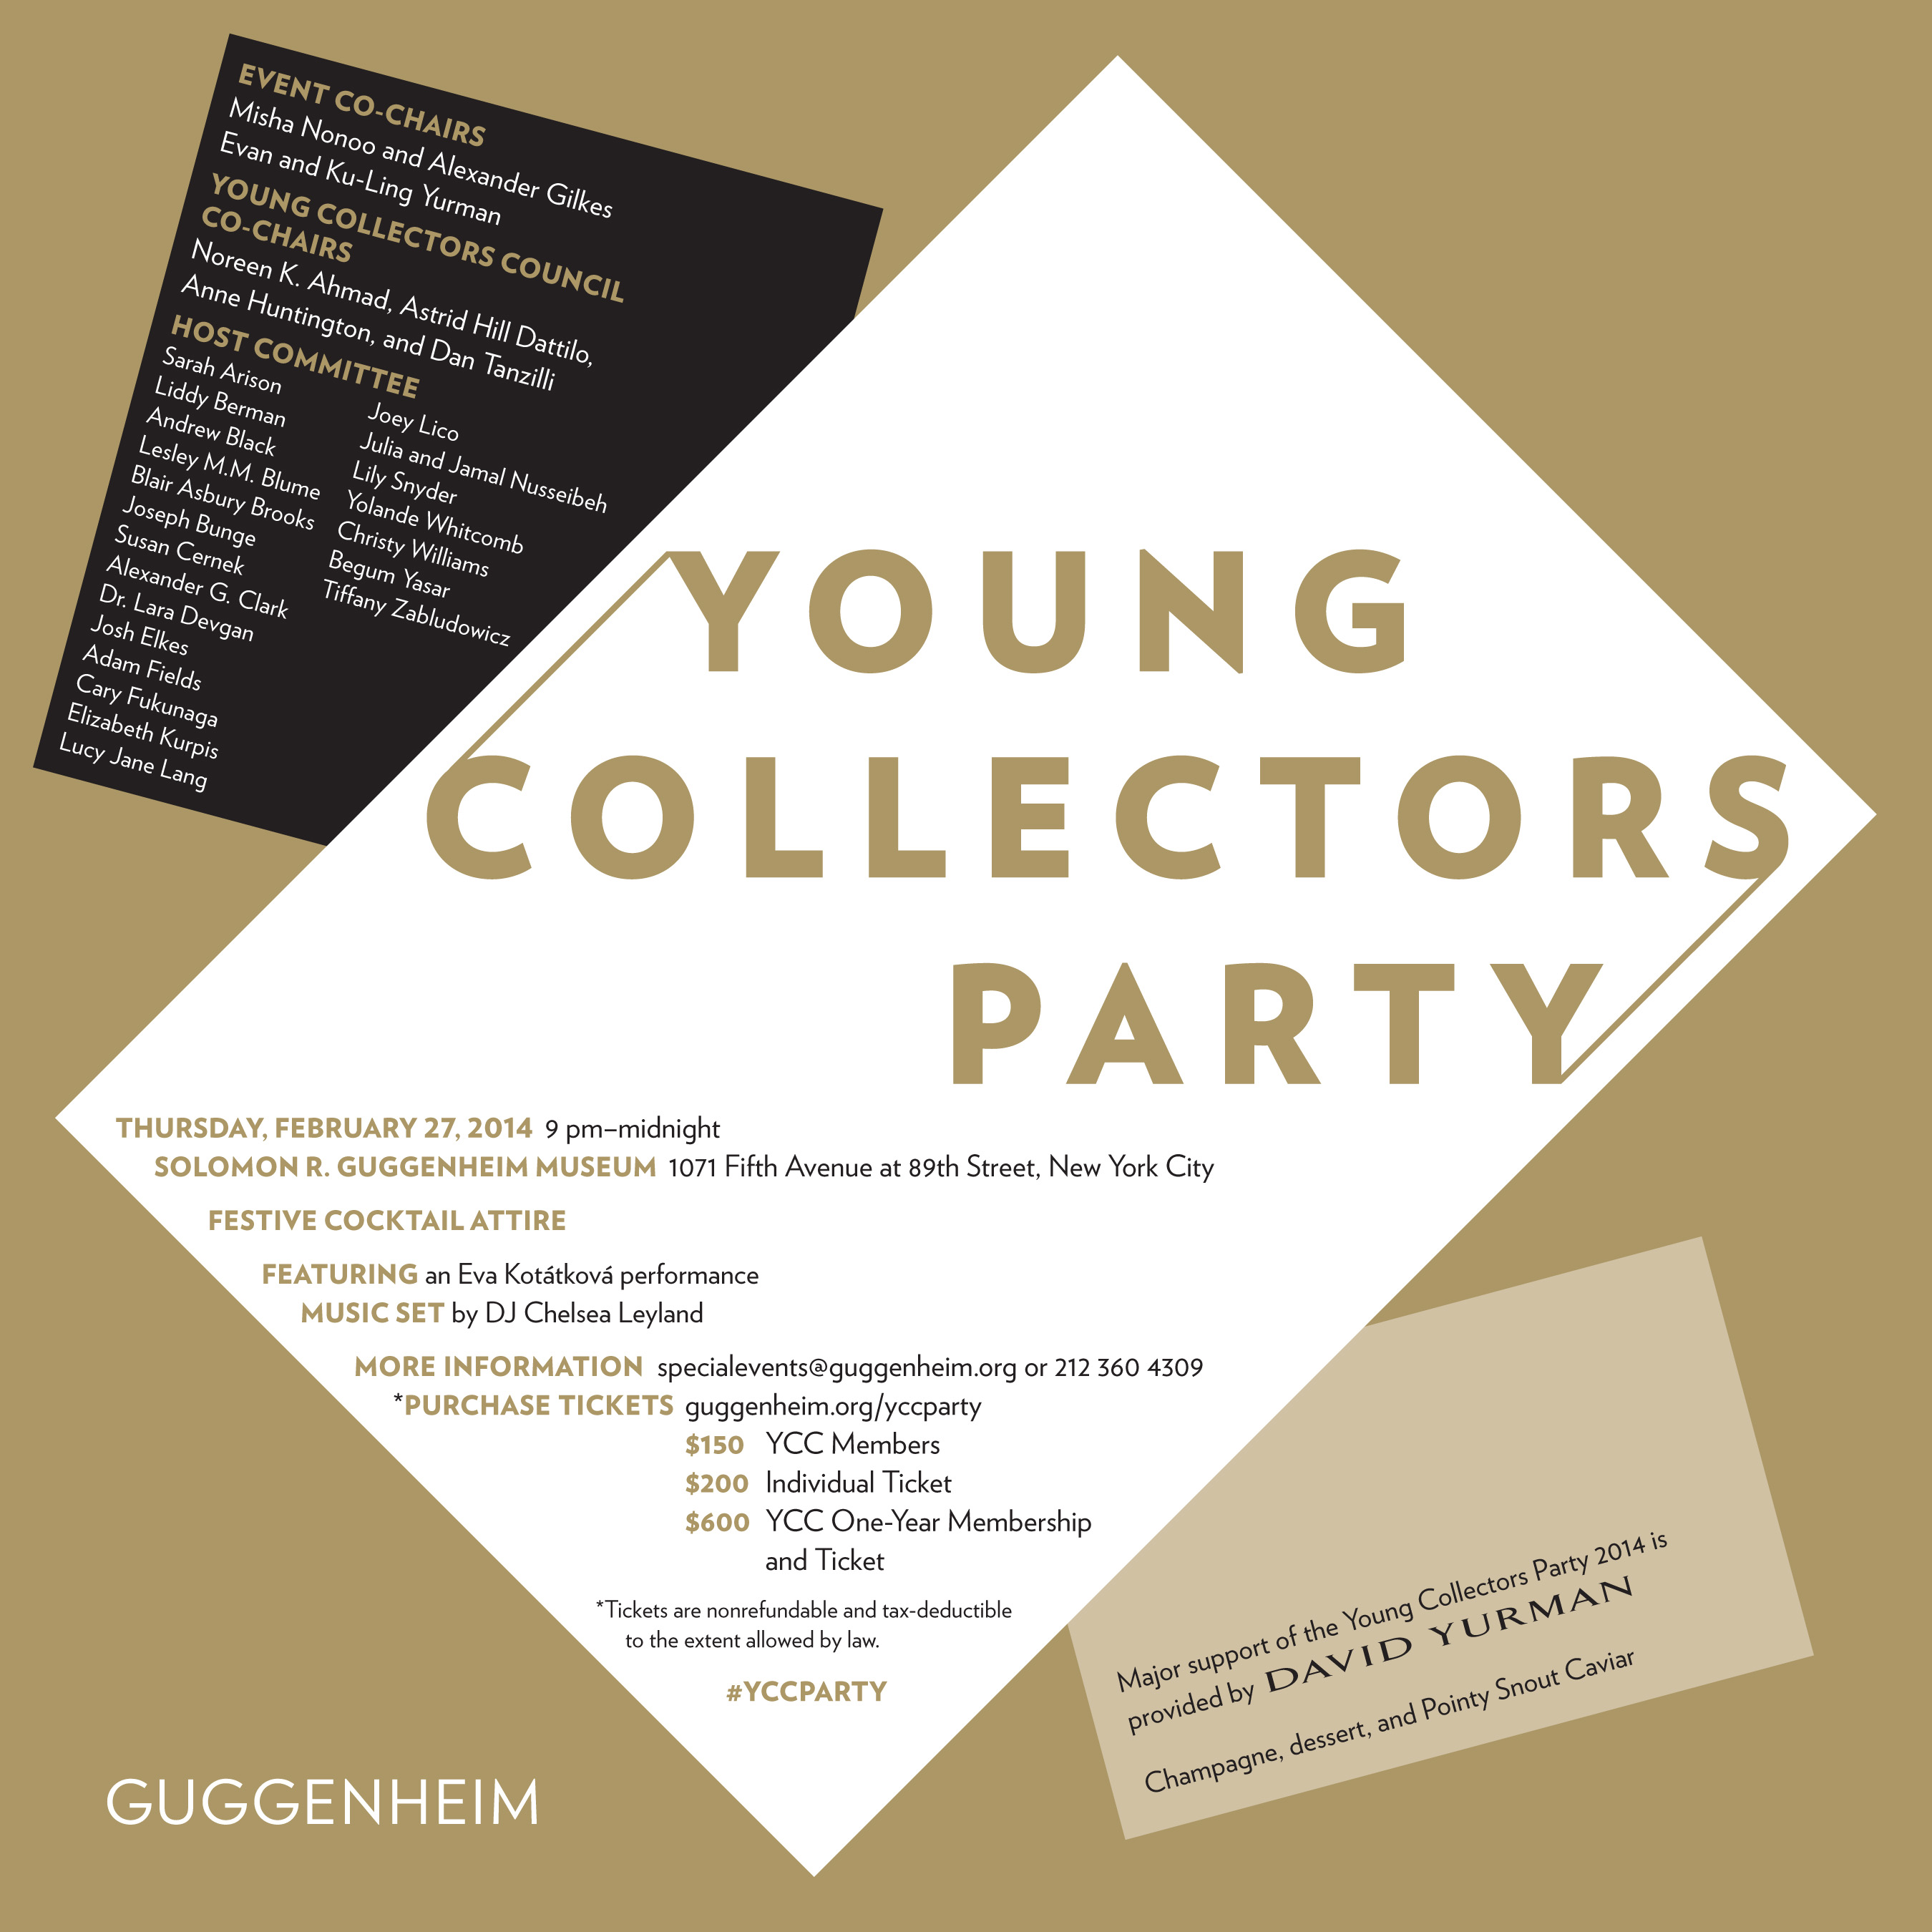 2014 Young Collectors Party Invite